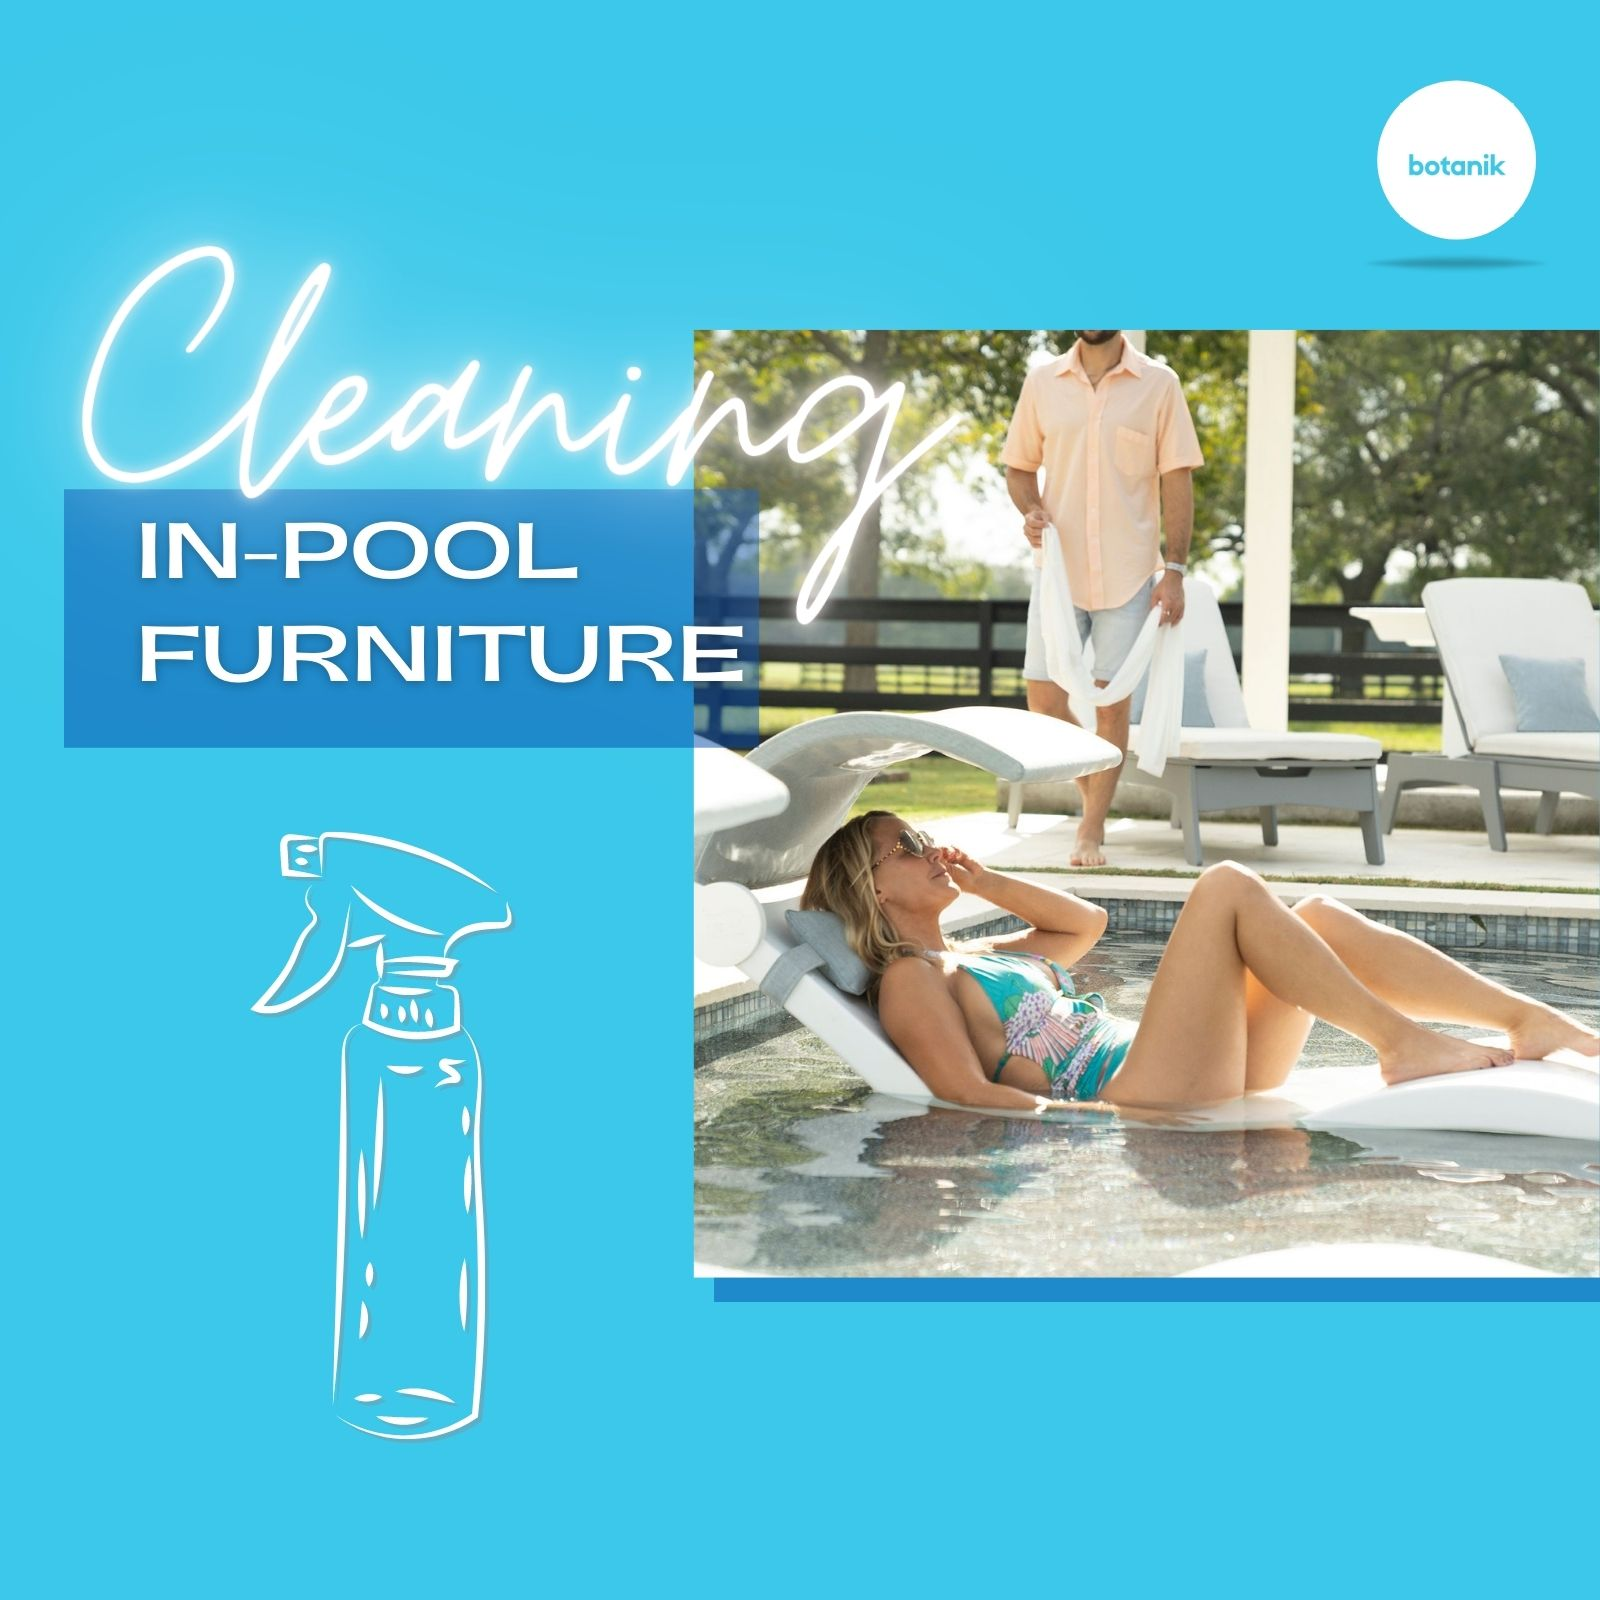 Cleaning In-Pool Furniture